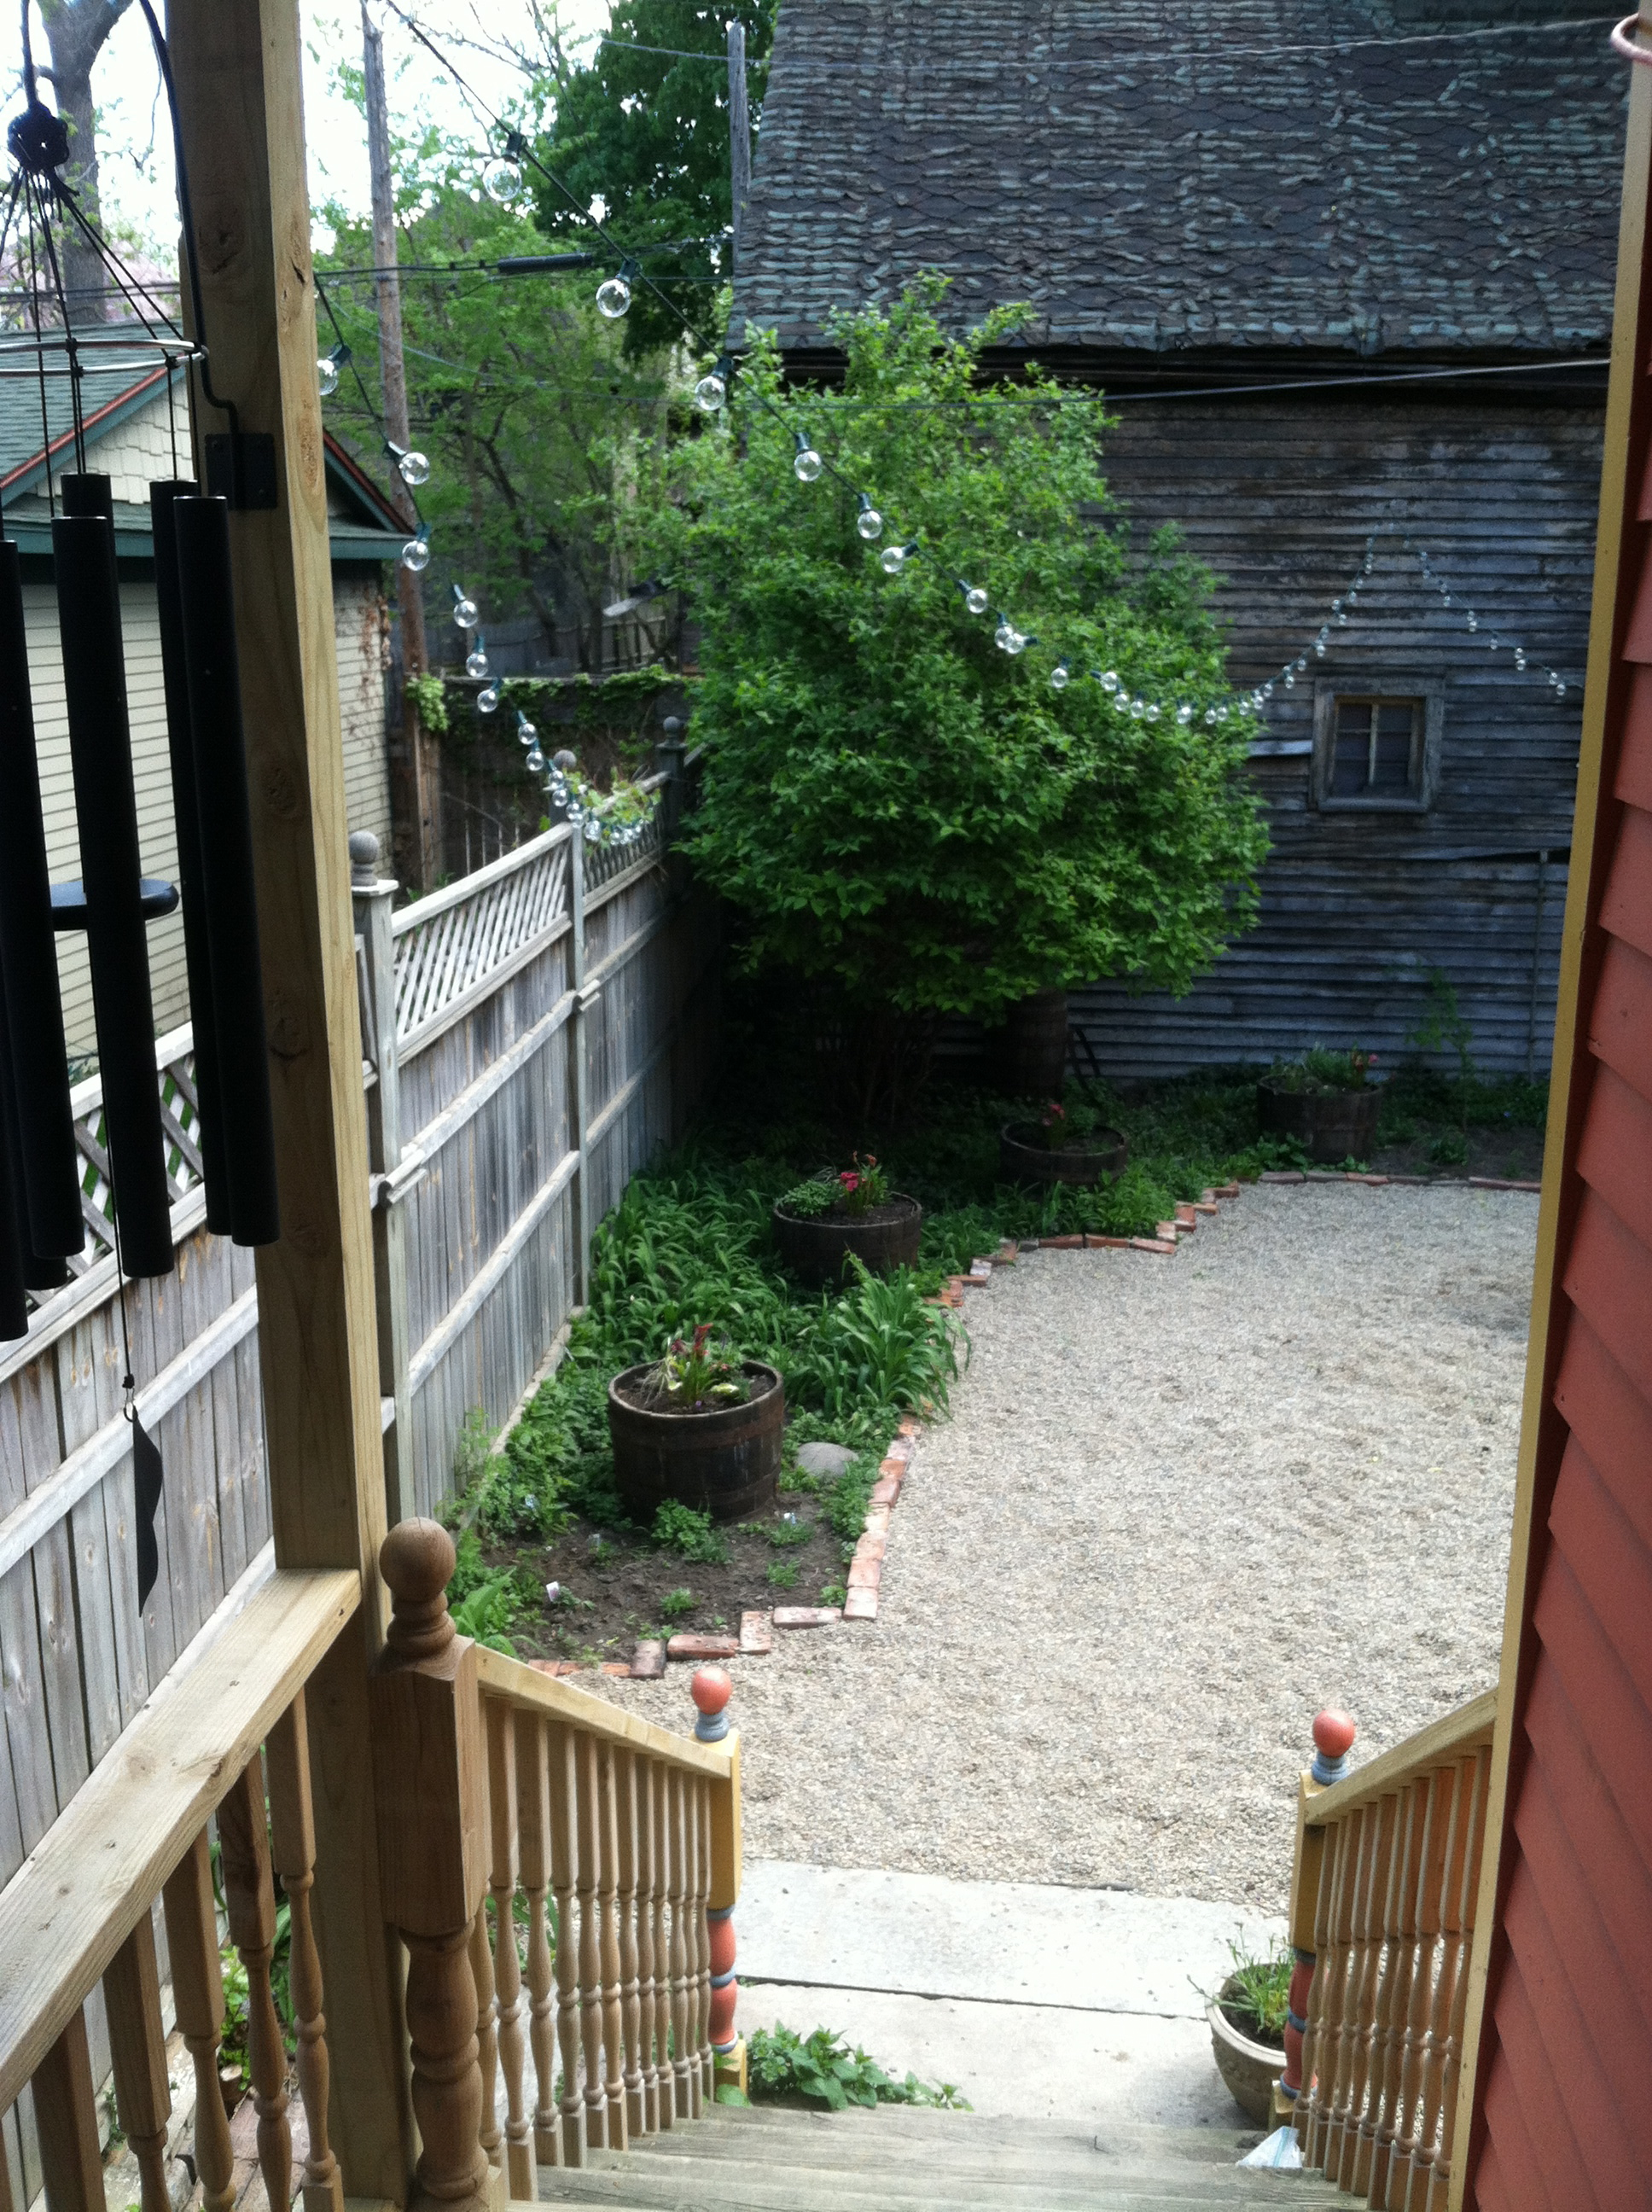 View from the backdoor.